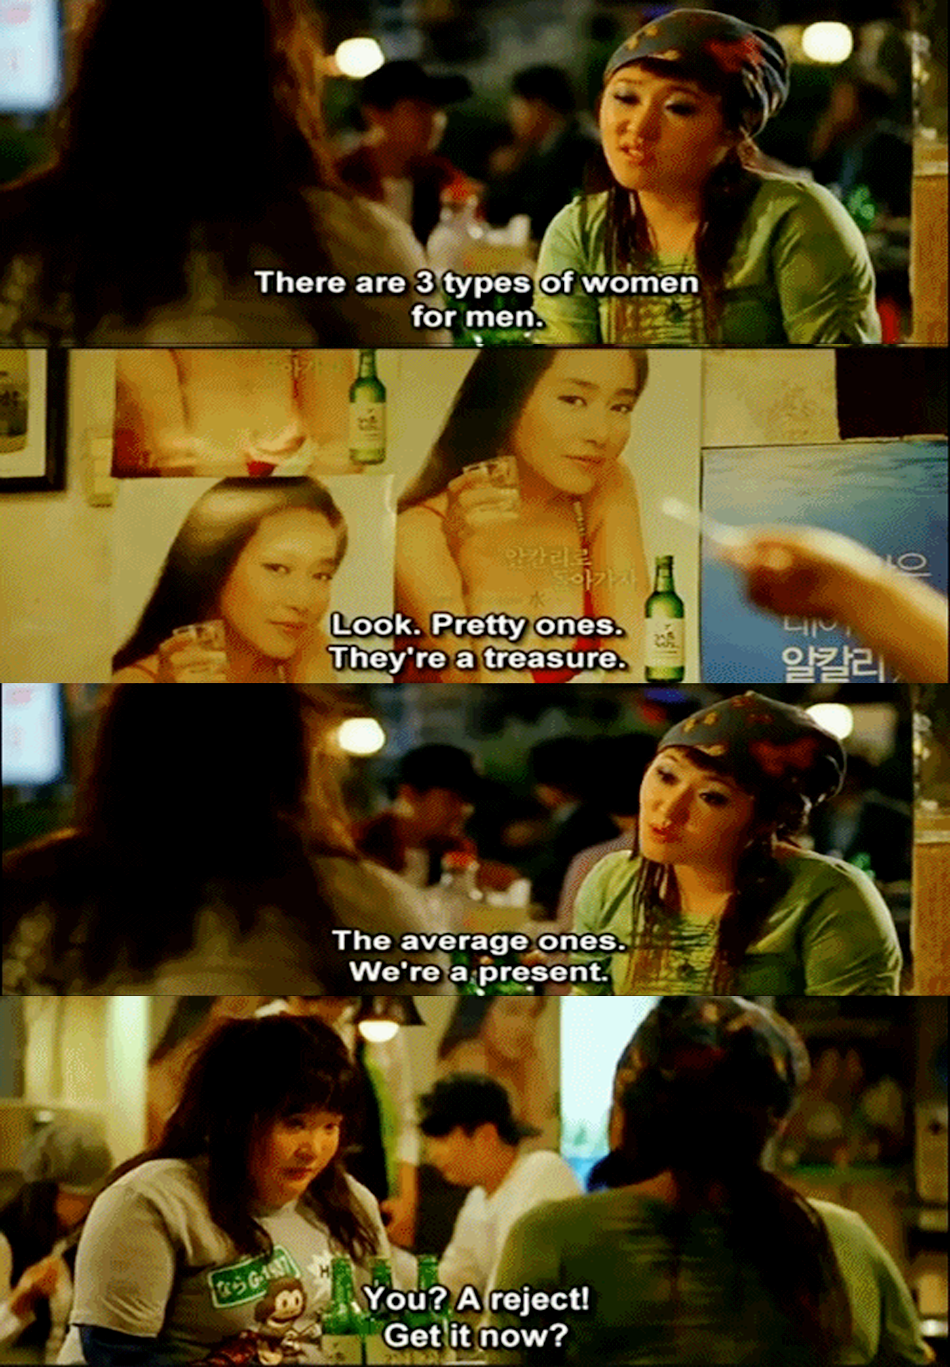 200 Pounds Beauty Beauty Movie Drama Movies Foreign Movies